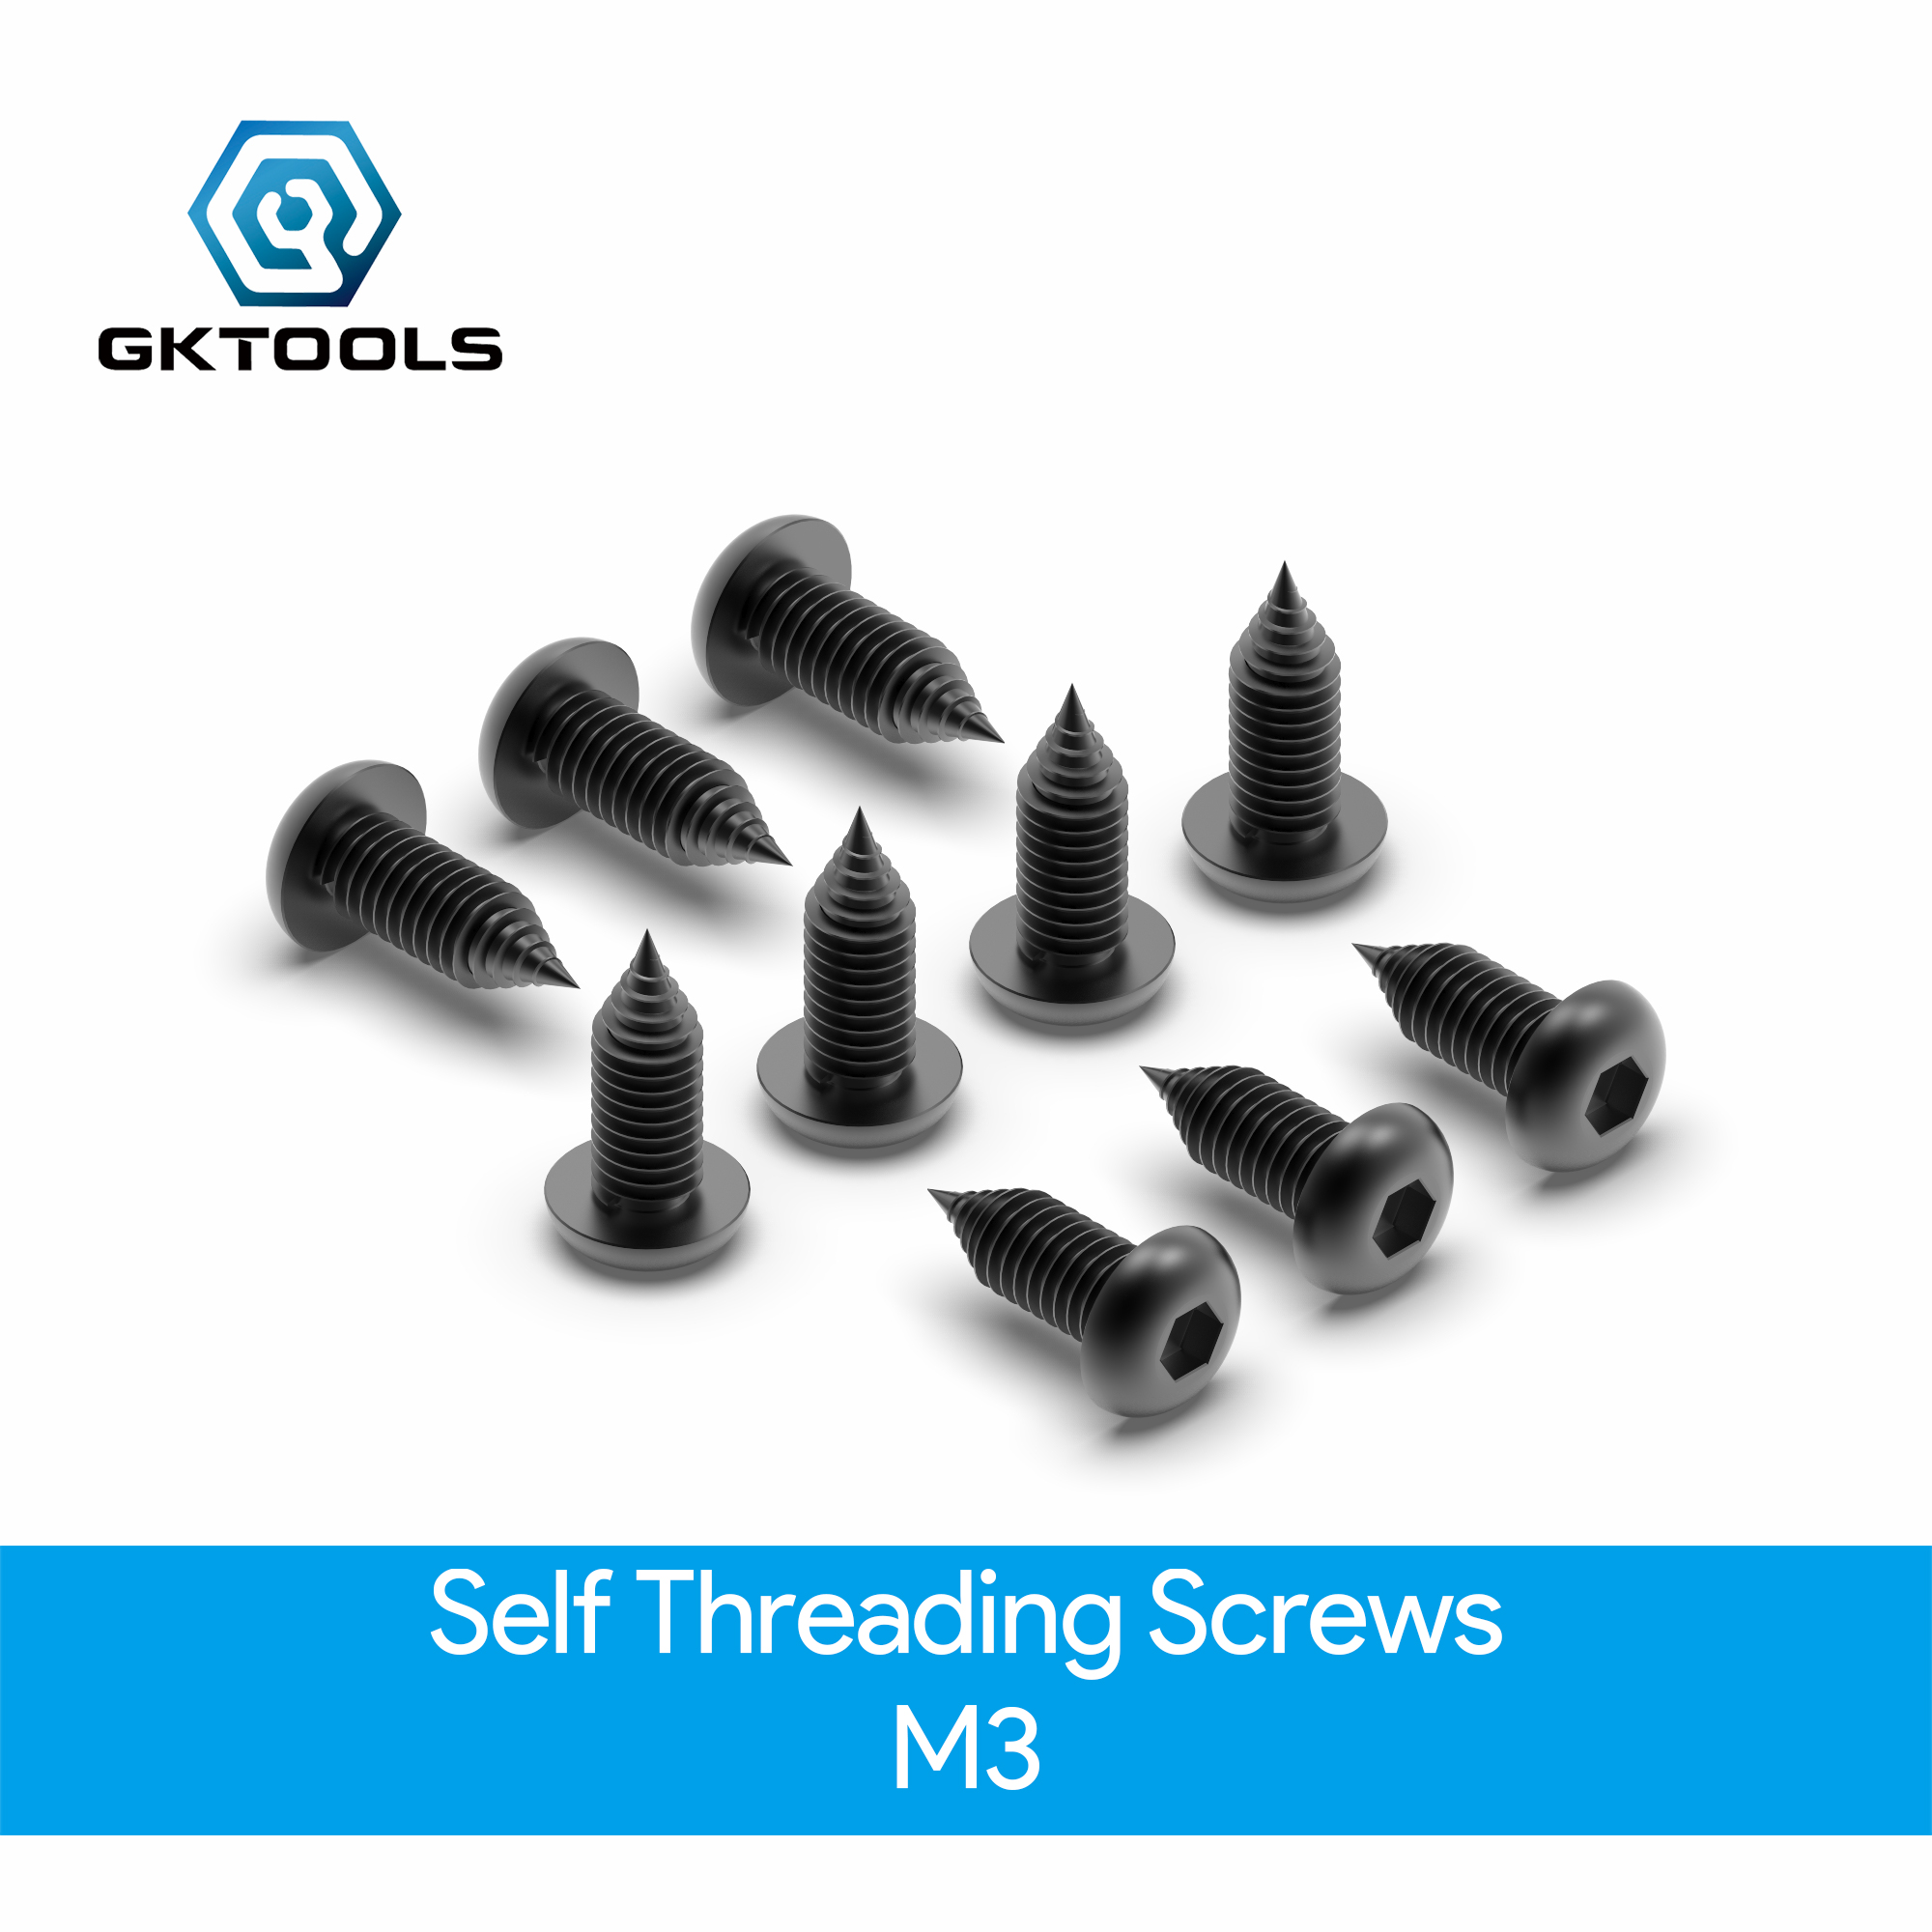 OpenBuilds Self Threading Screws - M3 (10 Pack)